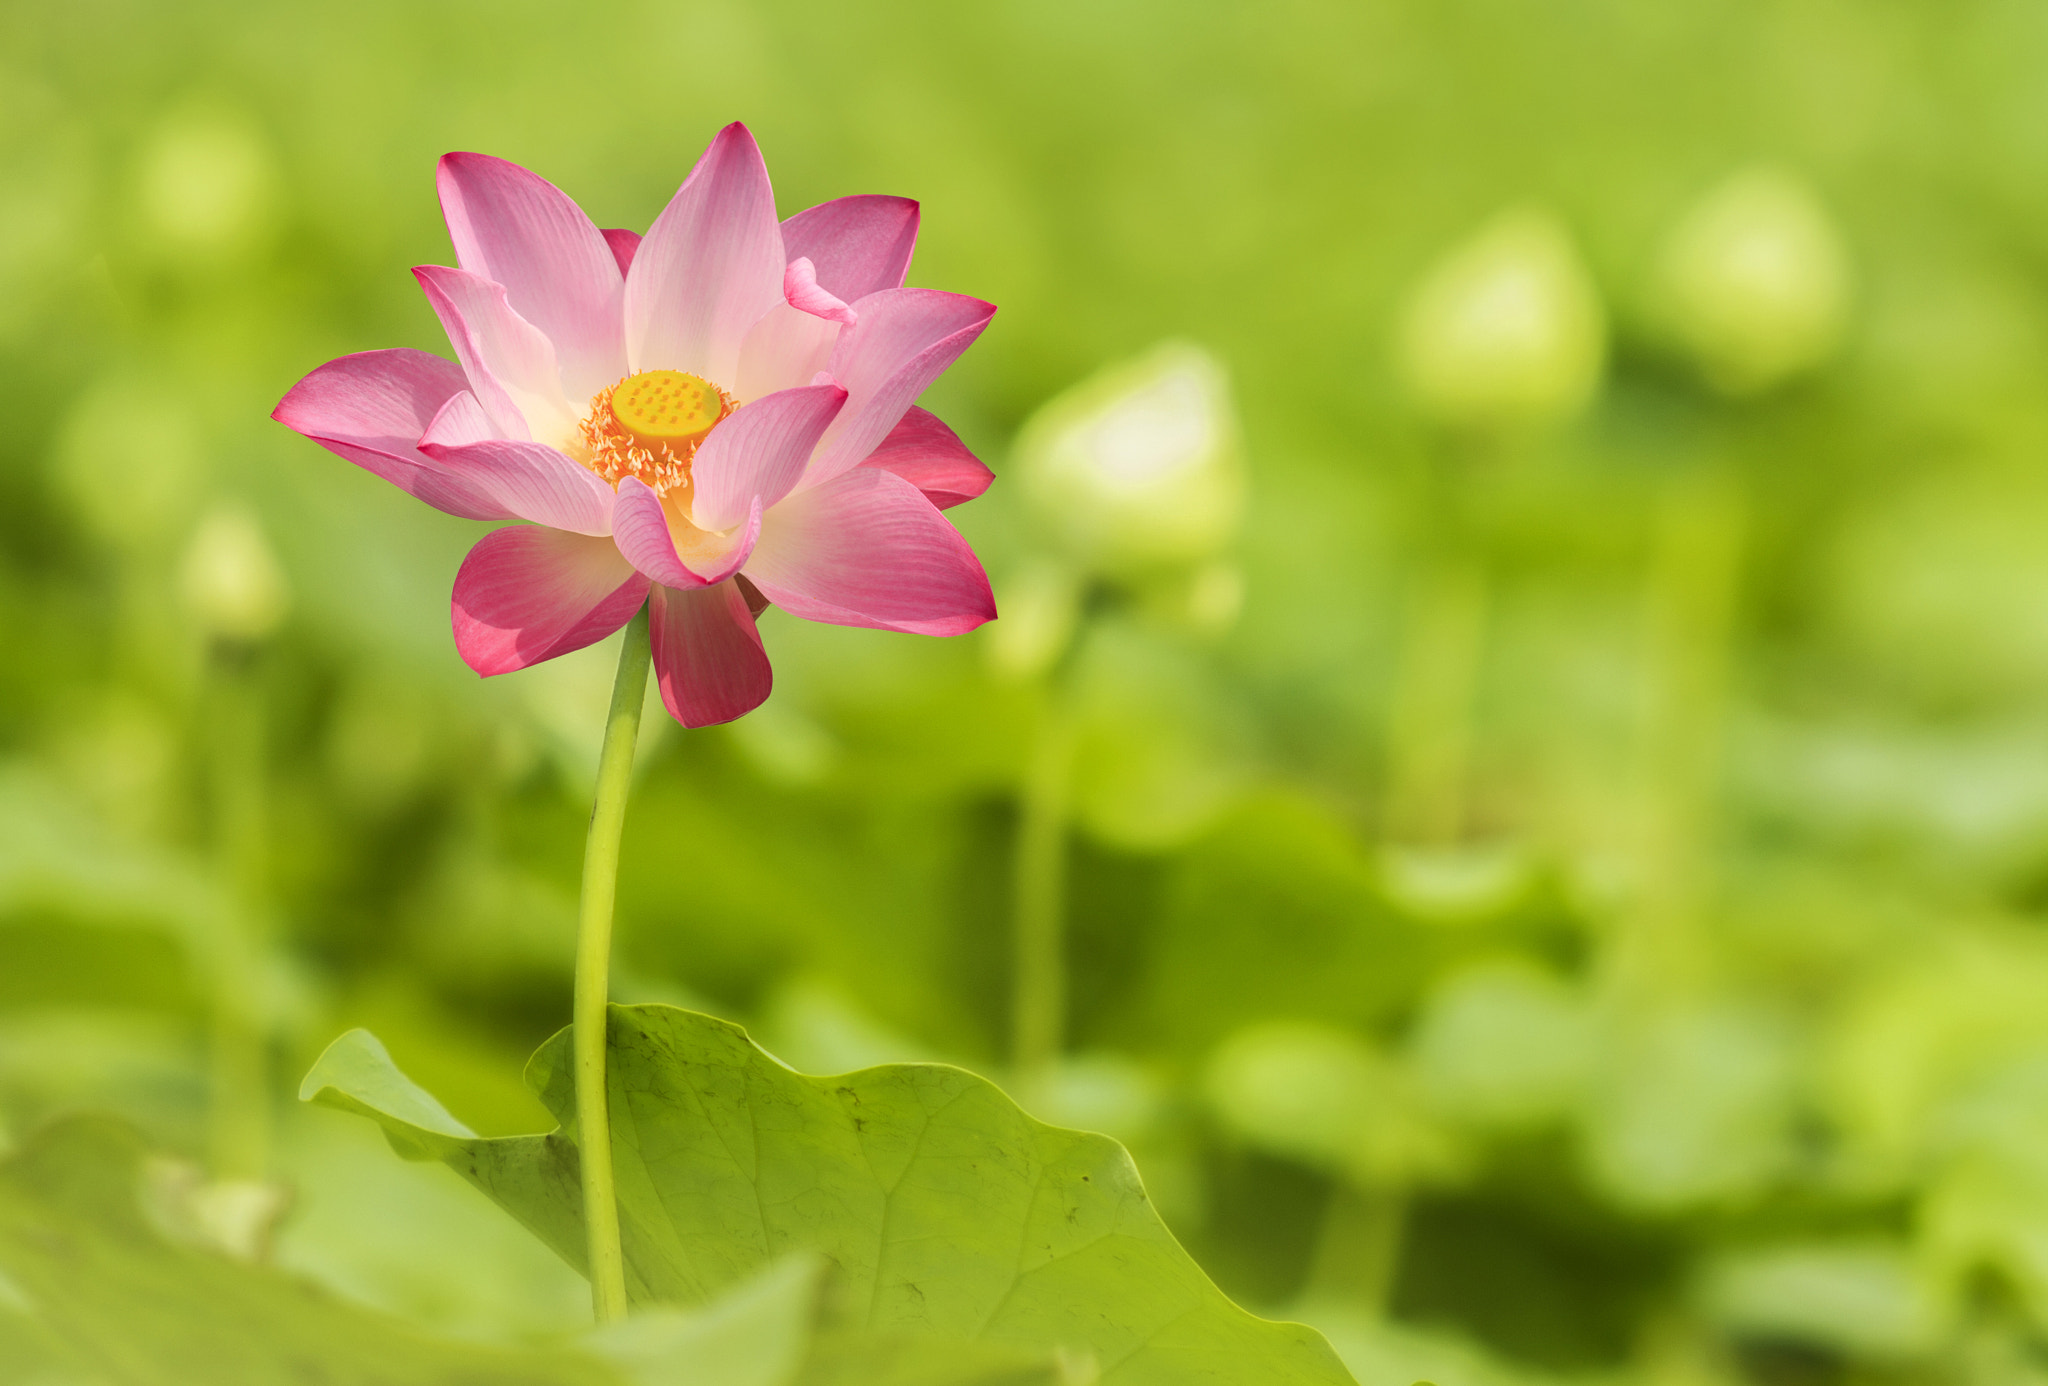 Photograph Green lotus selective focust by Anek S on 500px